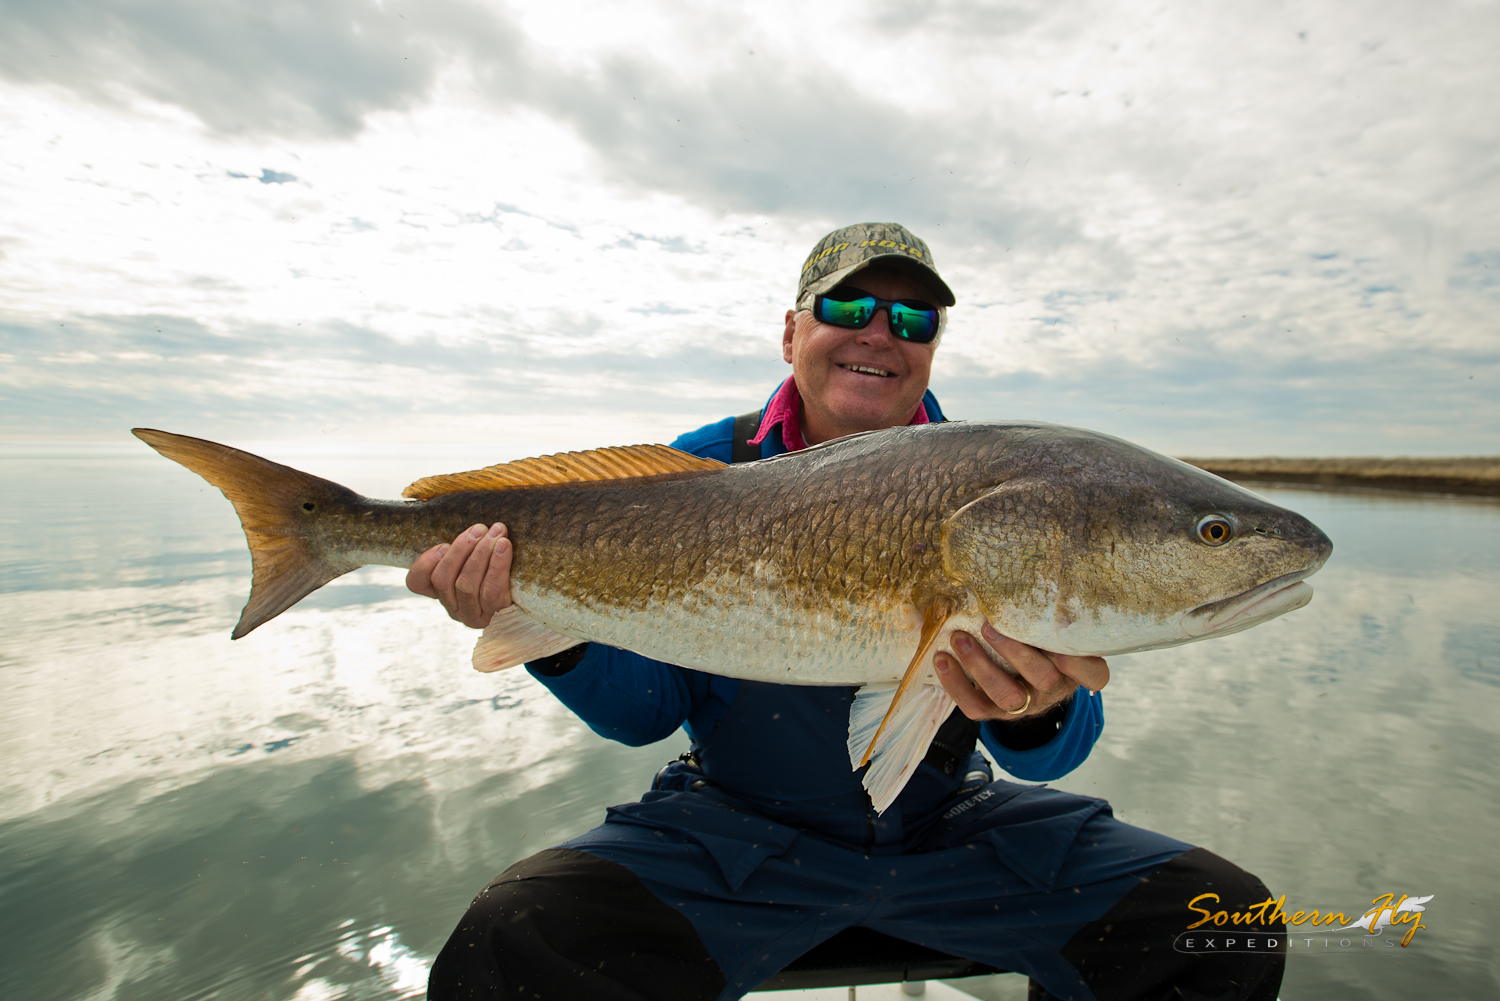 Best Hopedale La Spin Fishing Guide Southern Fly Expeditions